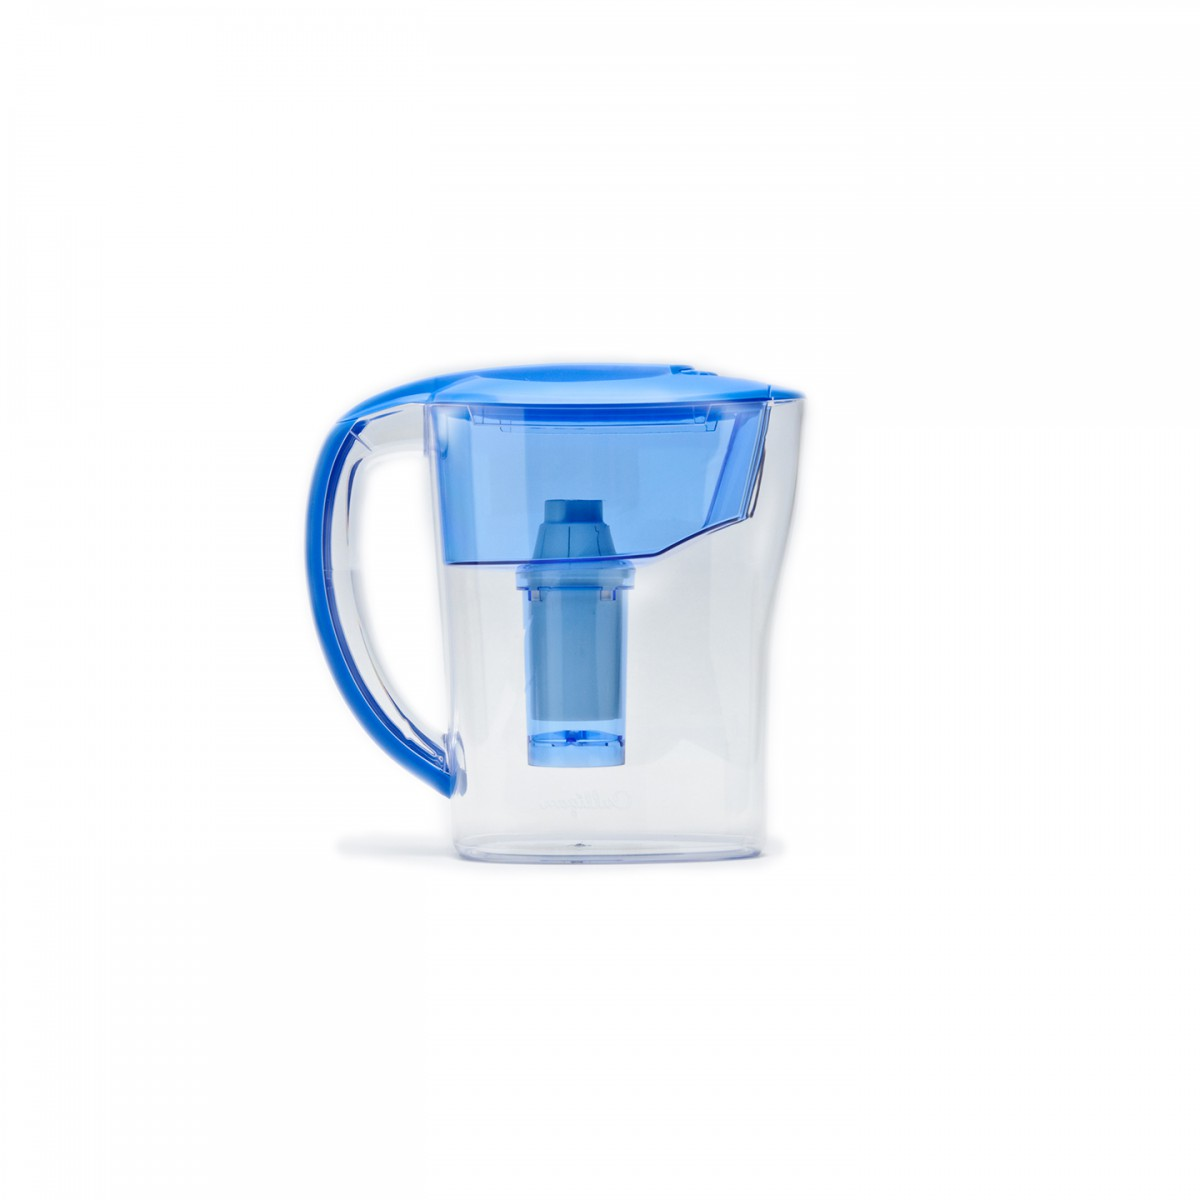 Pit 1 Culligan Level 2 Water Pitcher